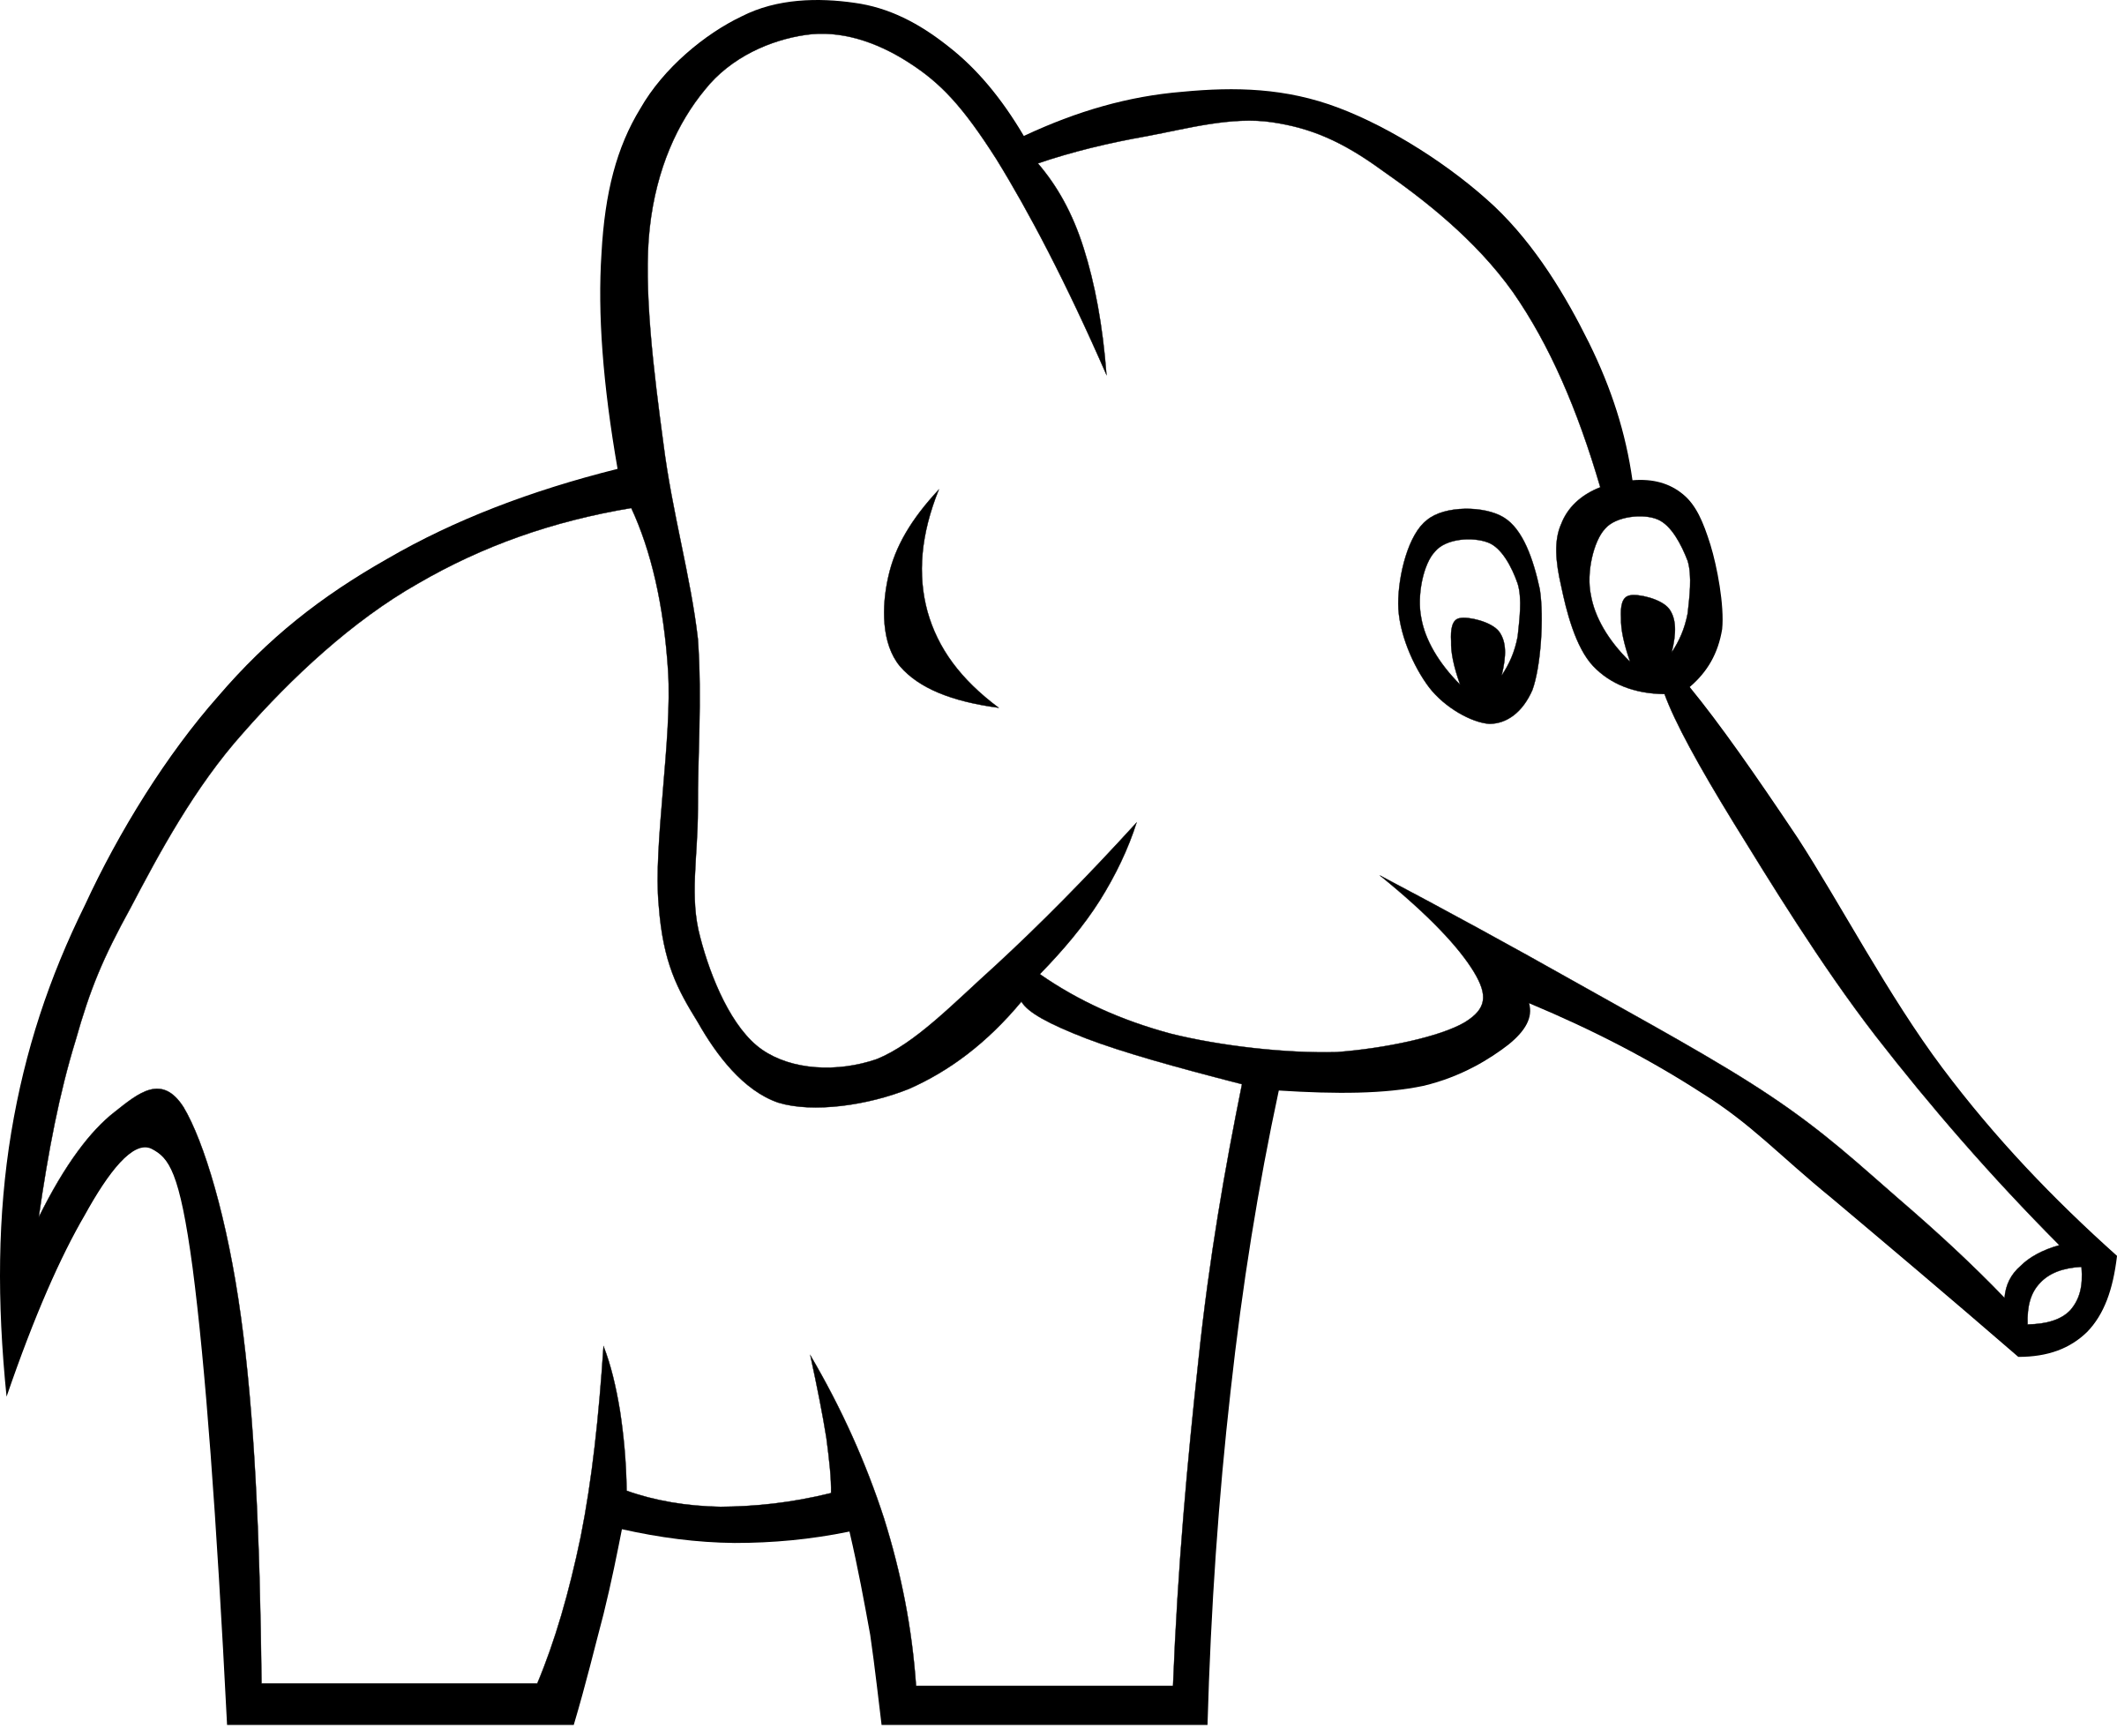 Certain Elephant by @Gerald_G, From wiki commons.The picture.